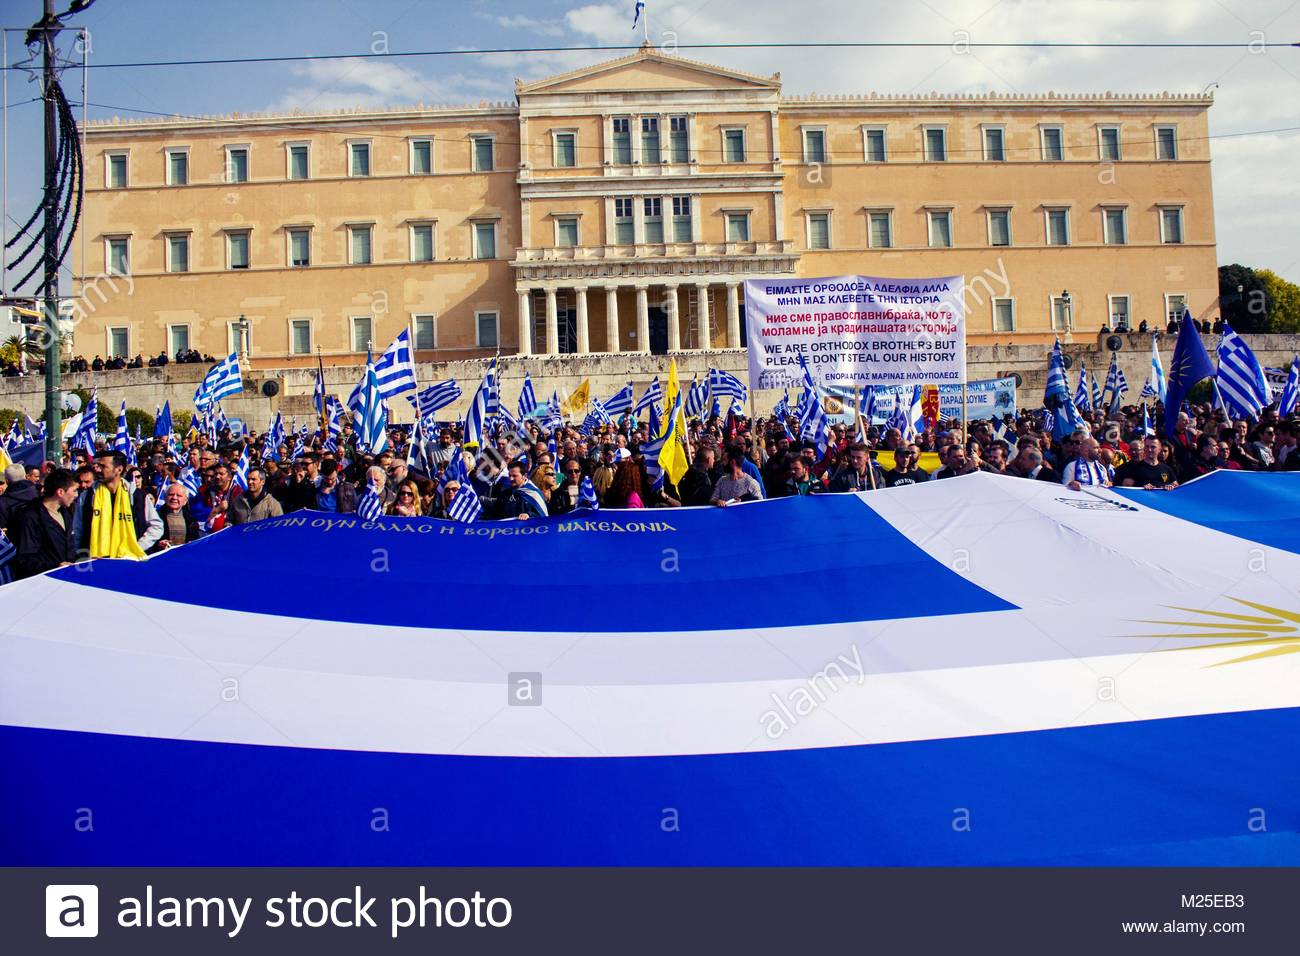 Greek nationalism stock photos greek nationalism stock images athens greece 4th february 2018 people holding a gigantic flag with the buycottarizona